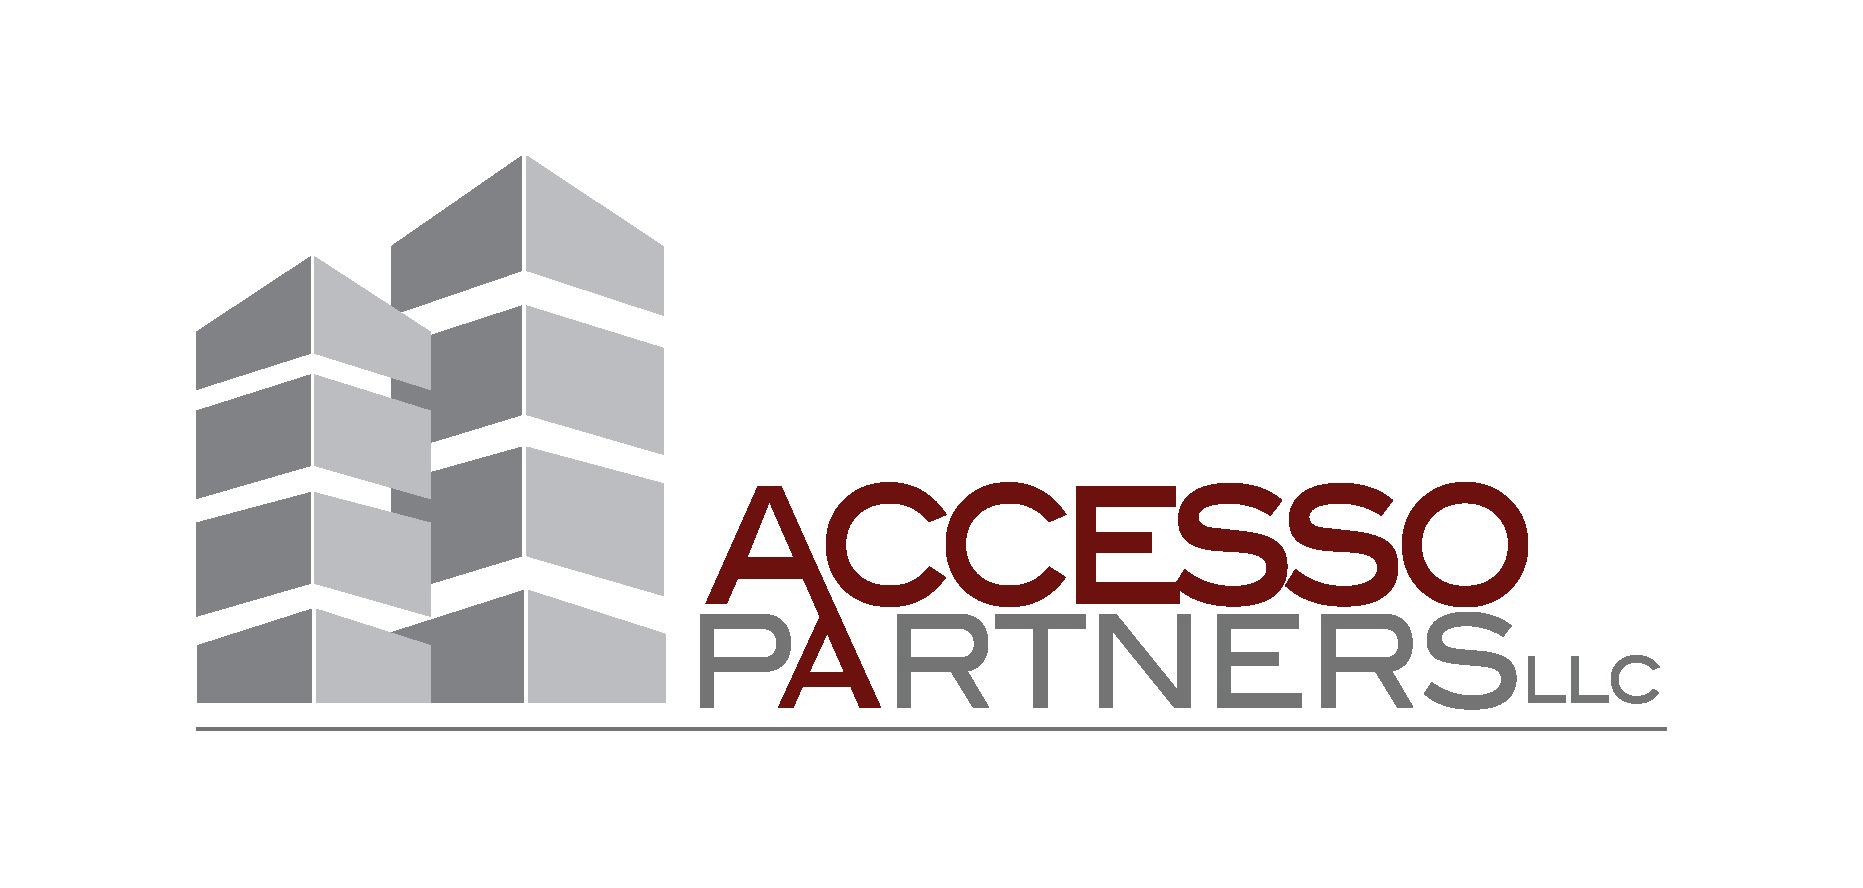 Beacon Investment Properties has a new name, Accesso Partners, LLC, and a new logo. (Graphic: Business Wire)